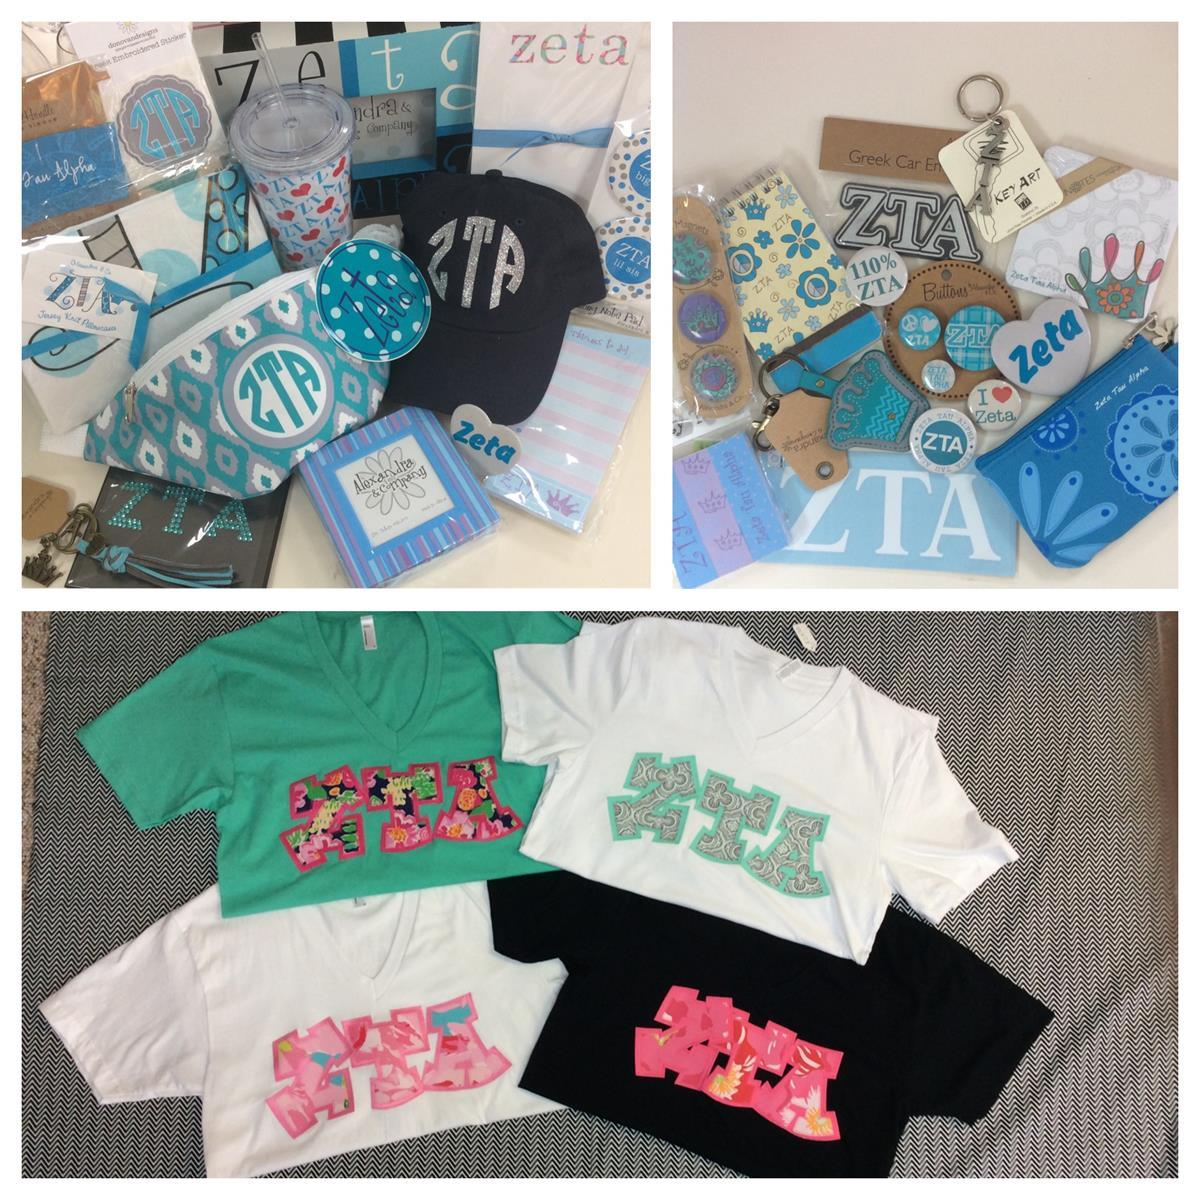 Zeta Tau Alpha Custom Embroidery T-shirts Accessories Campus Gear Stickers